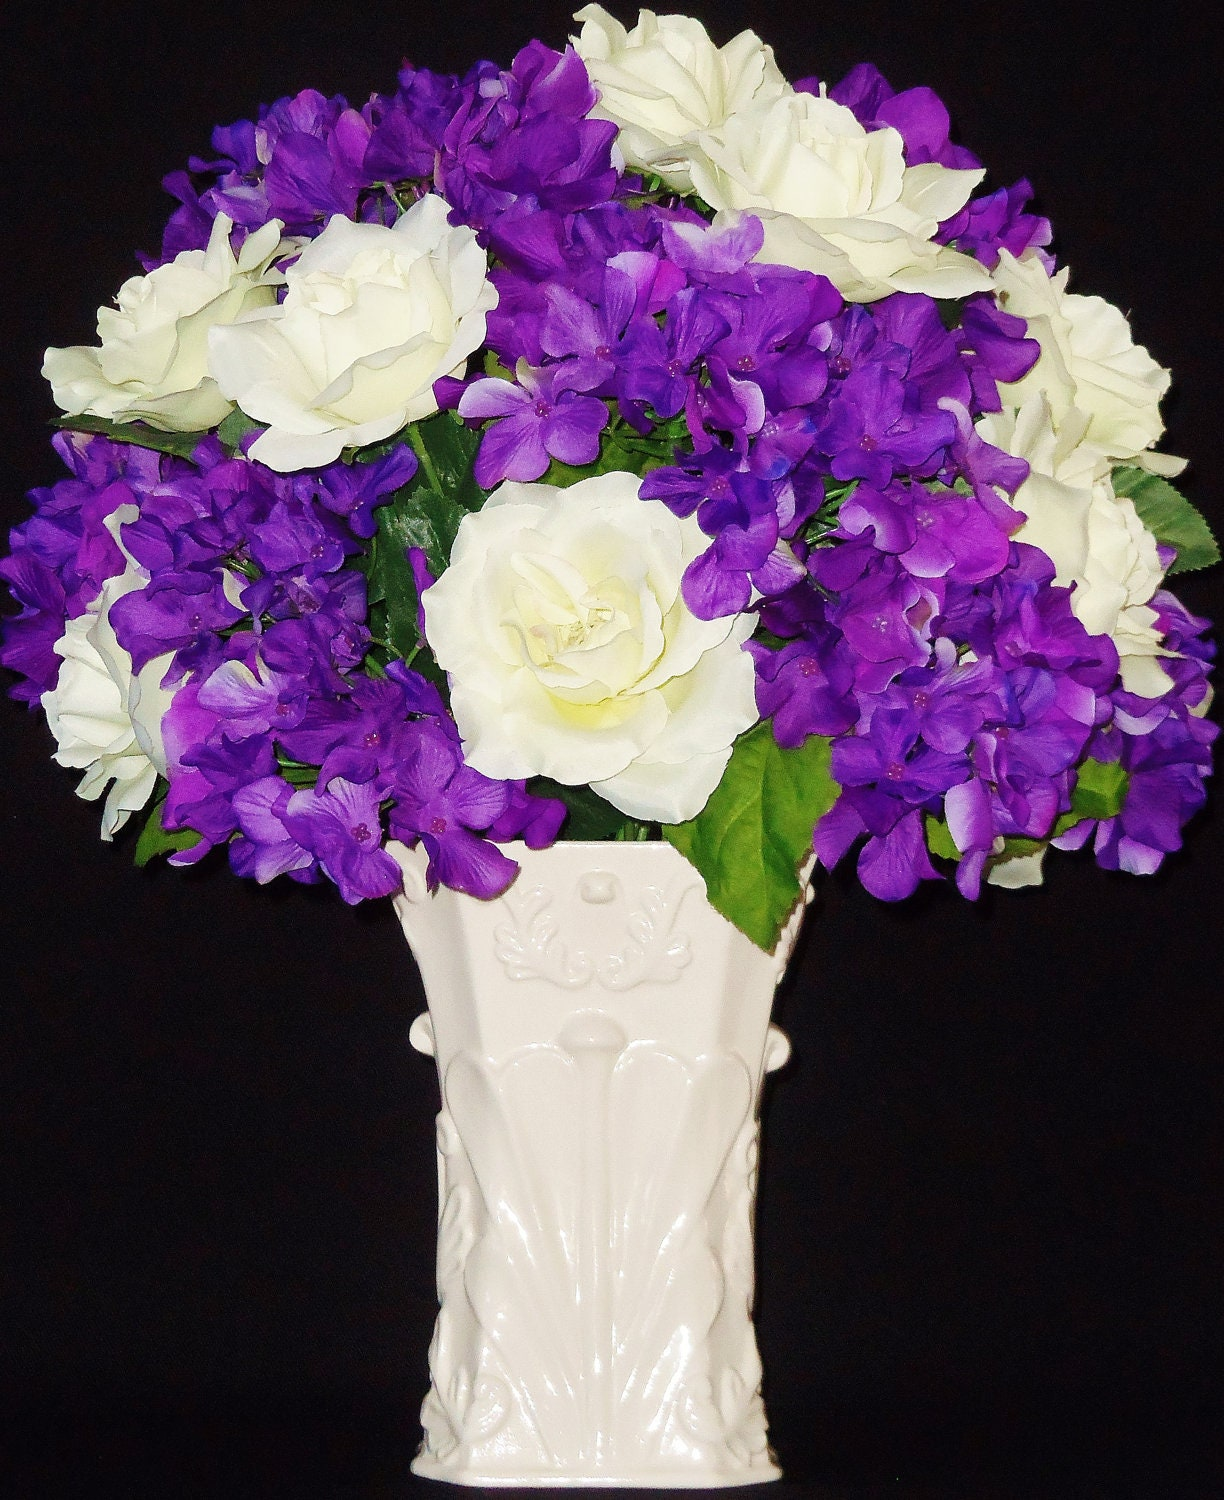 artificial flower arrangement white roses  purple hydrangea, Beautiful flower